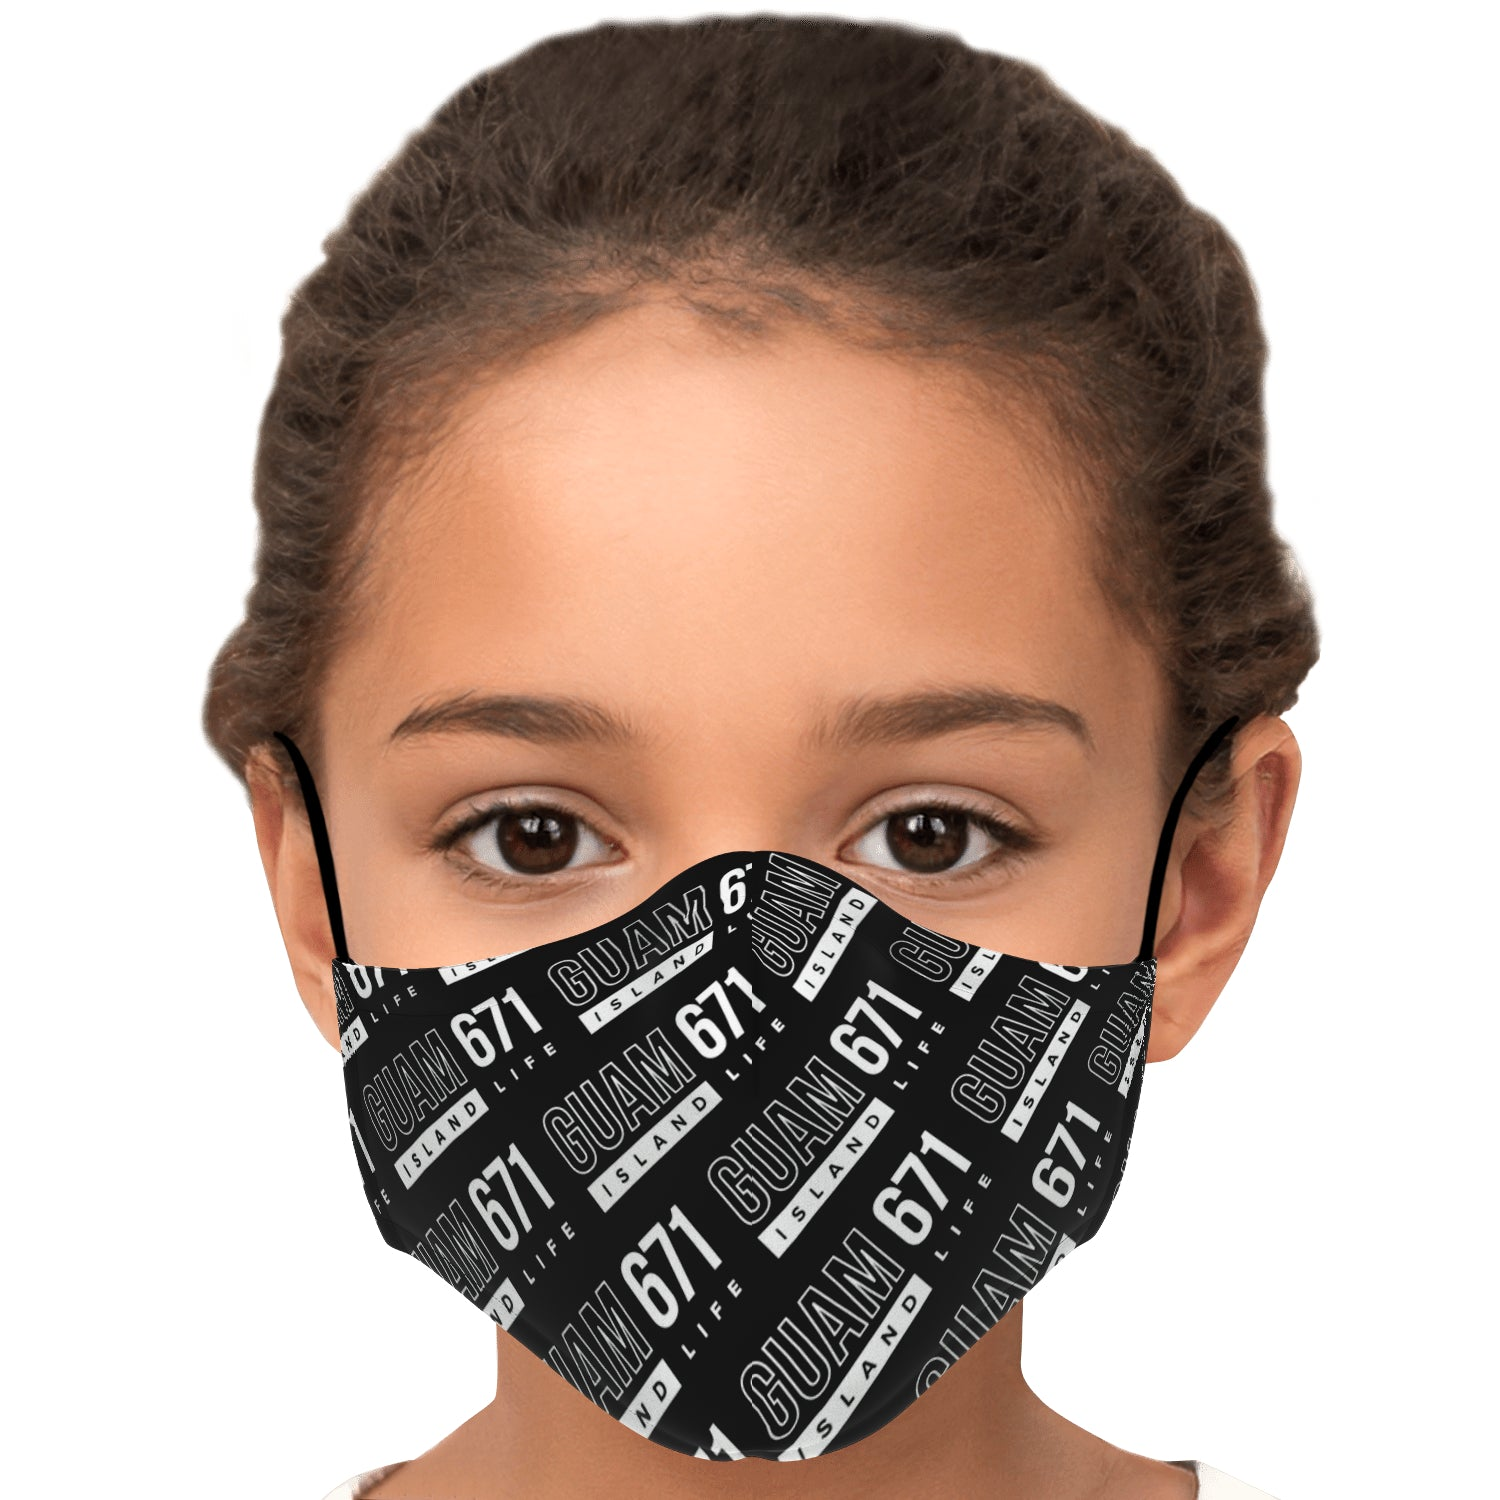 Guam 671 Face Mask for Youth and Adults